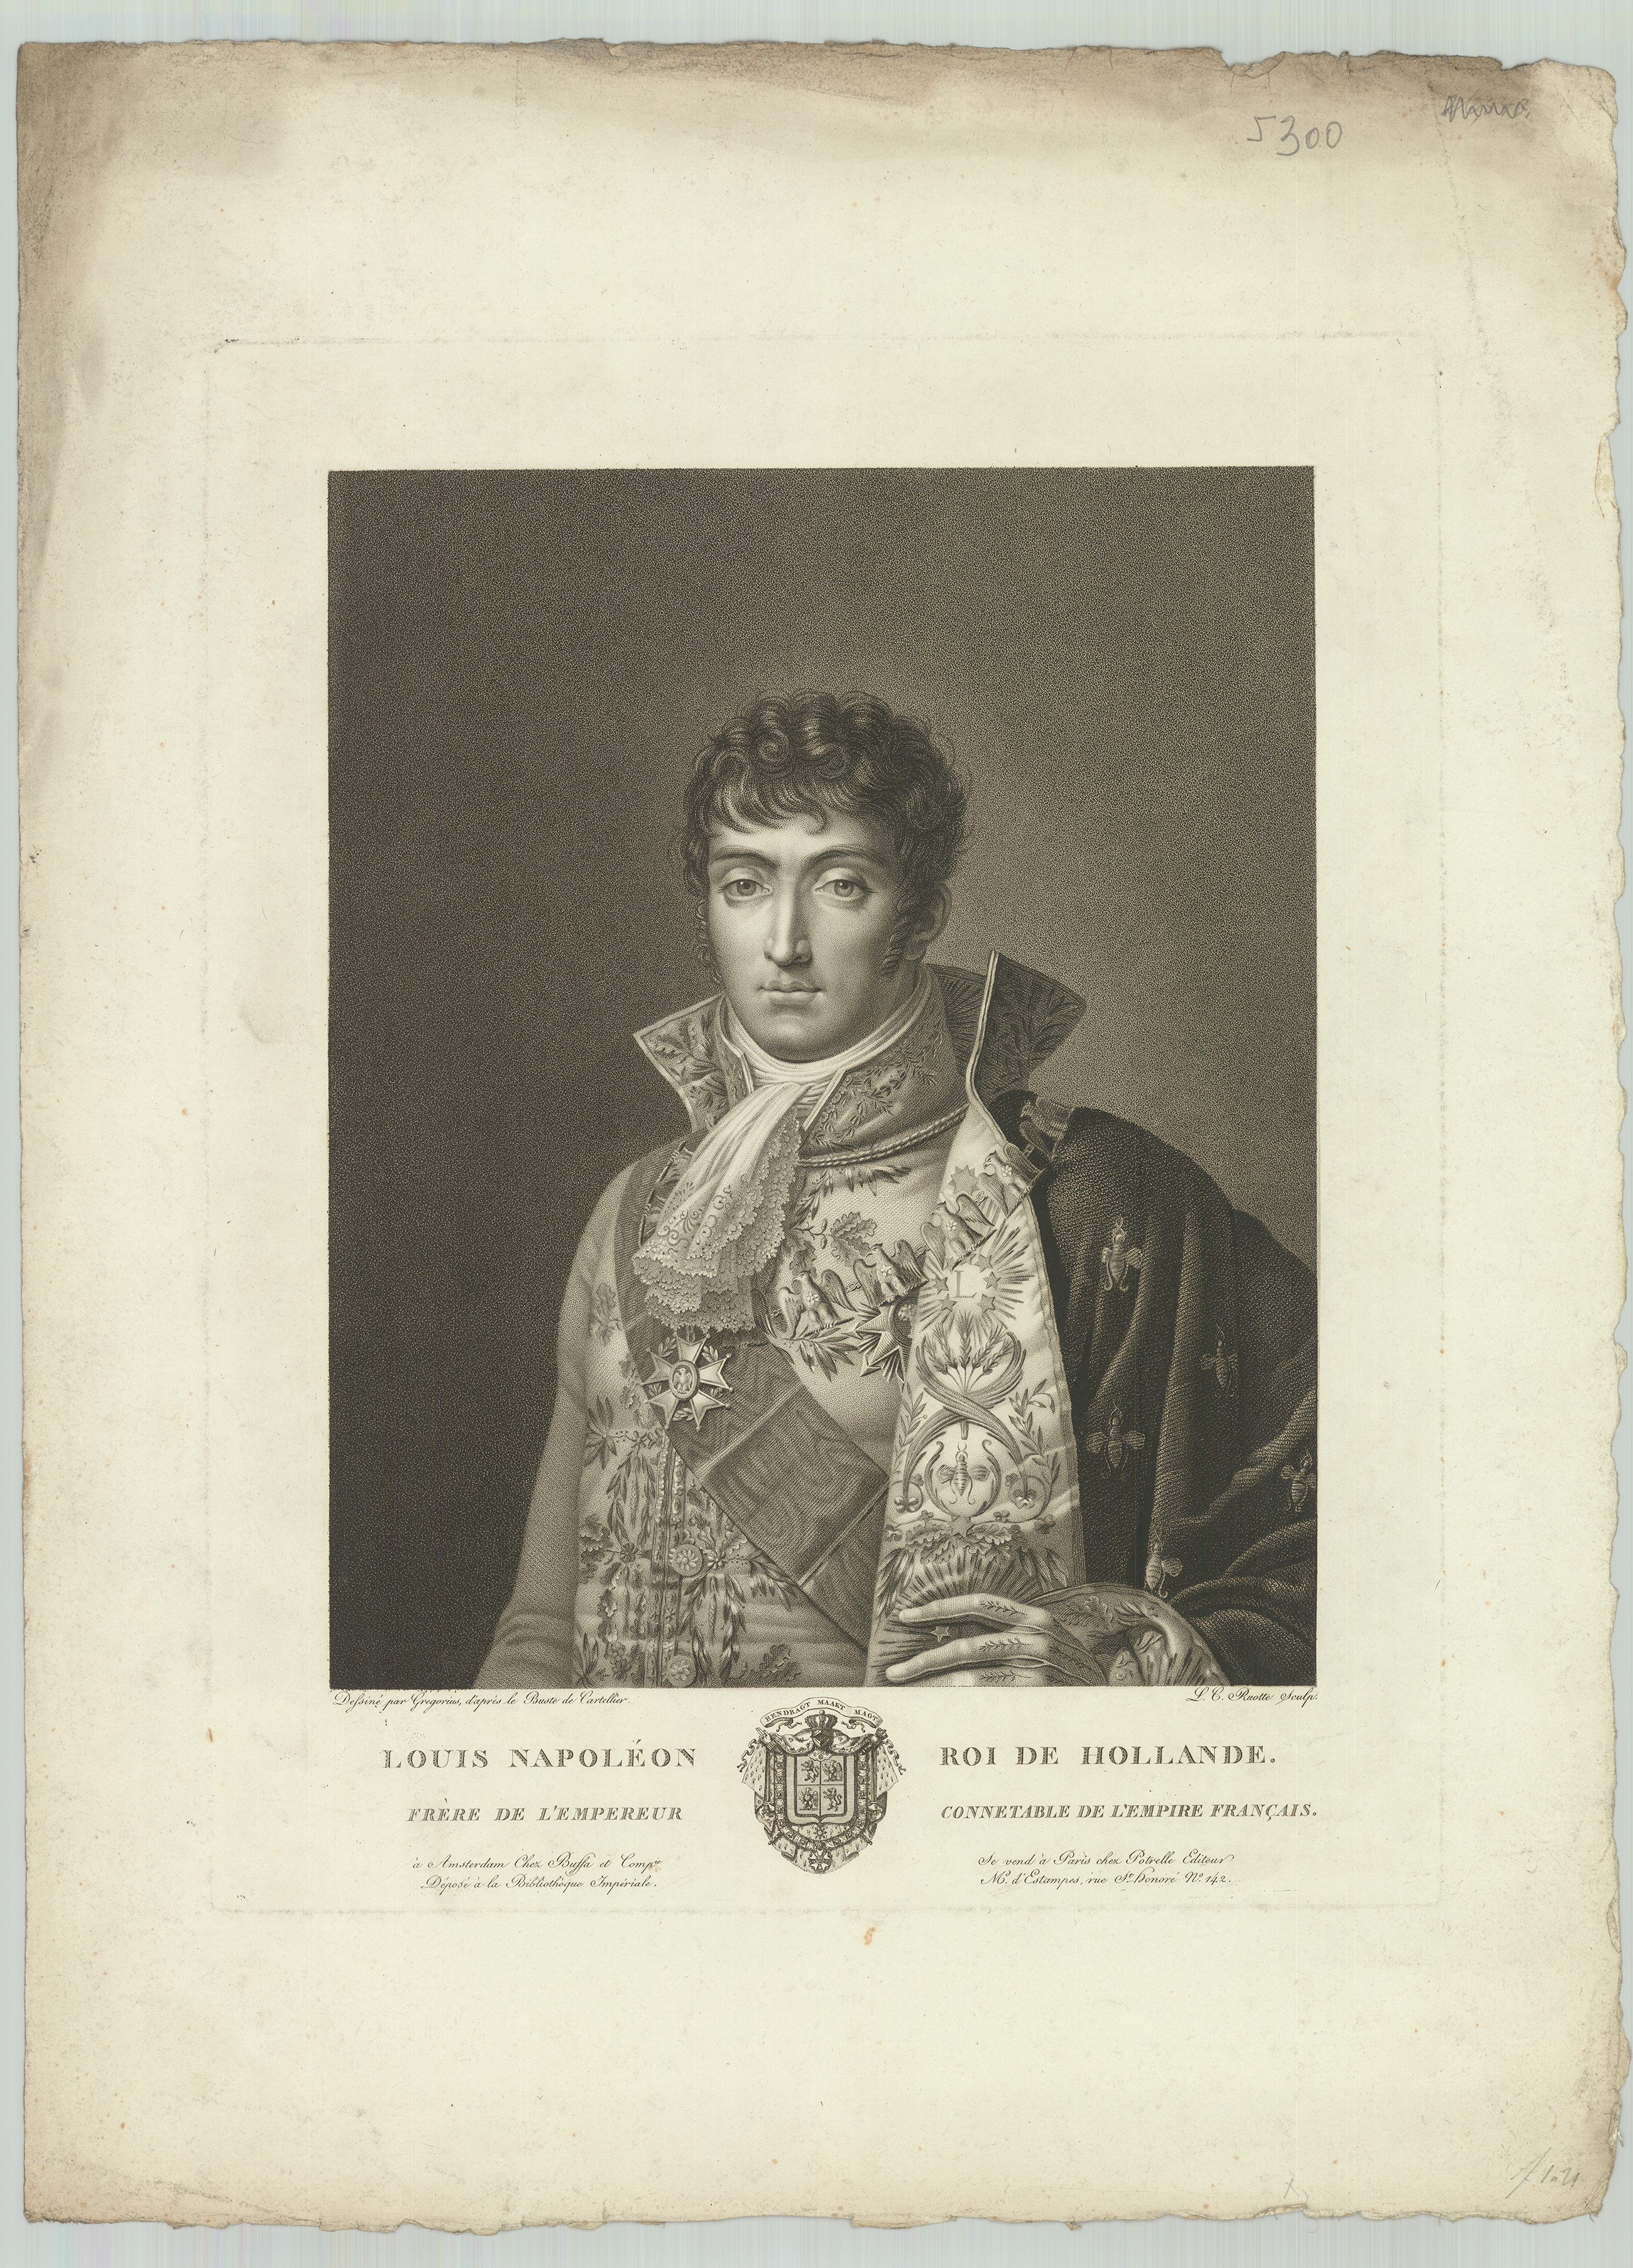 Louis Napoleon Roi De Hollande